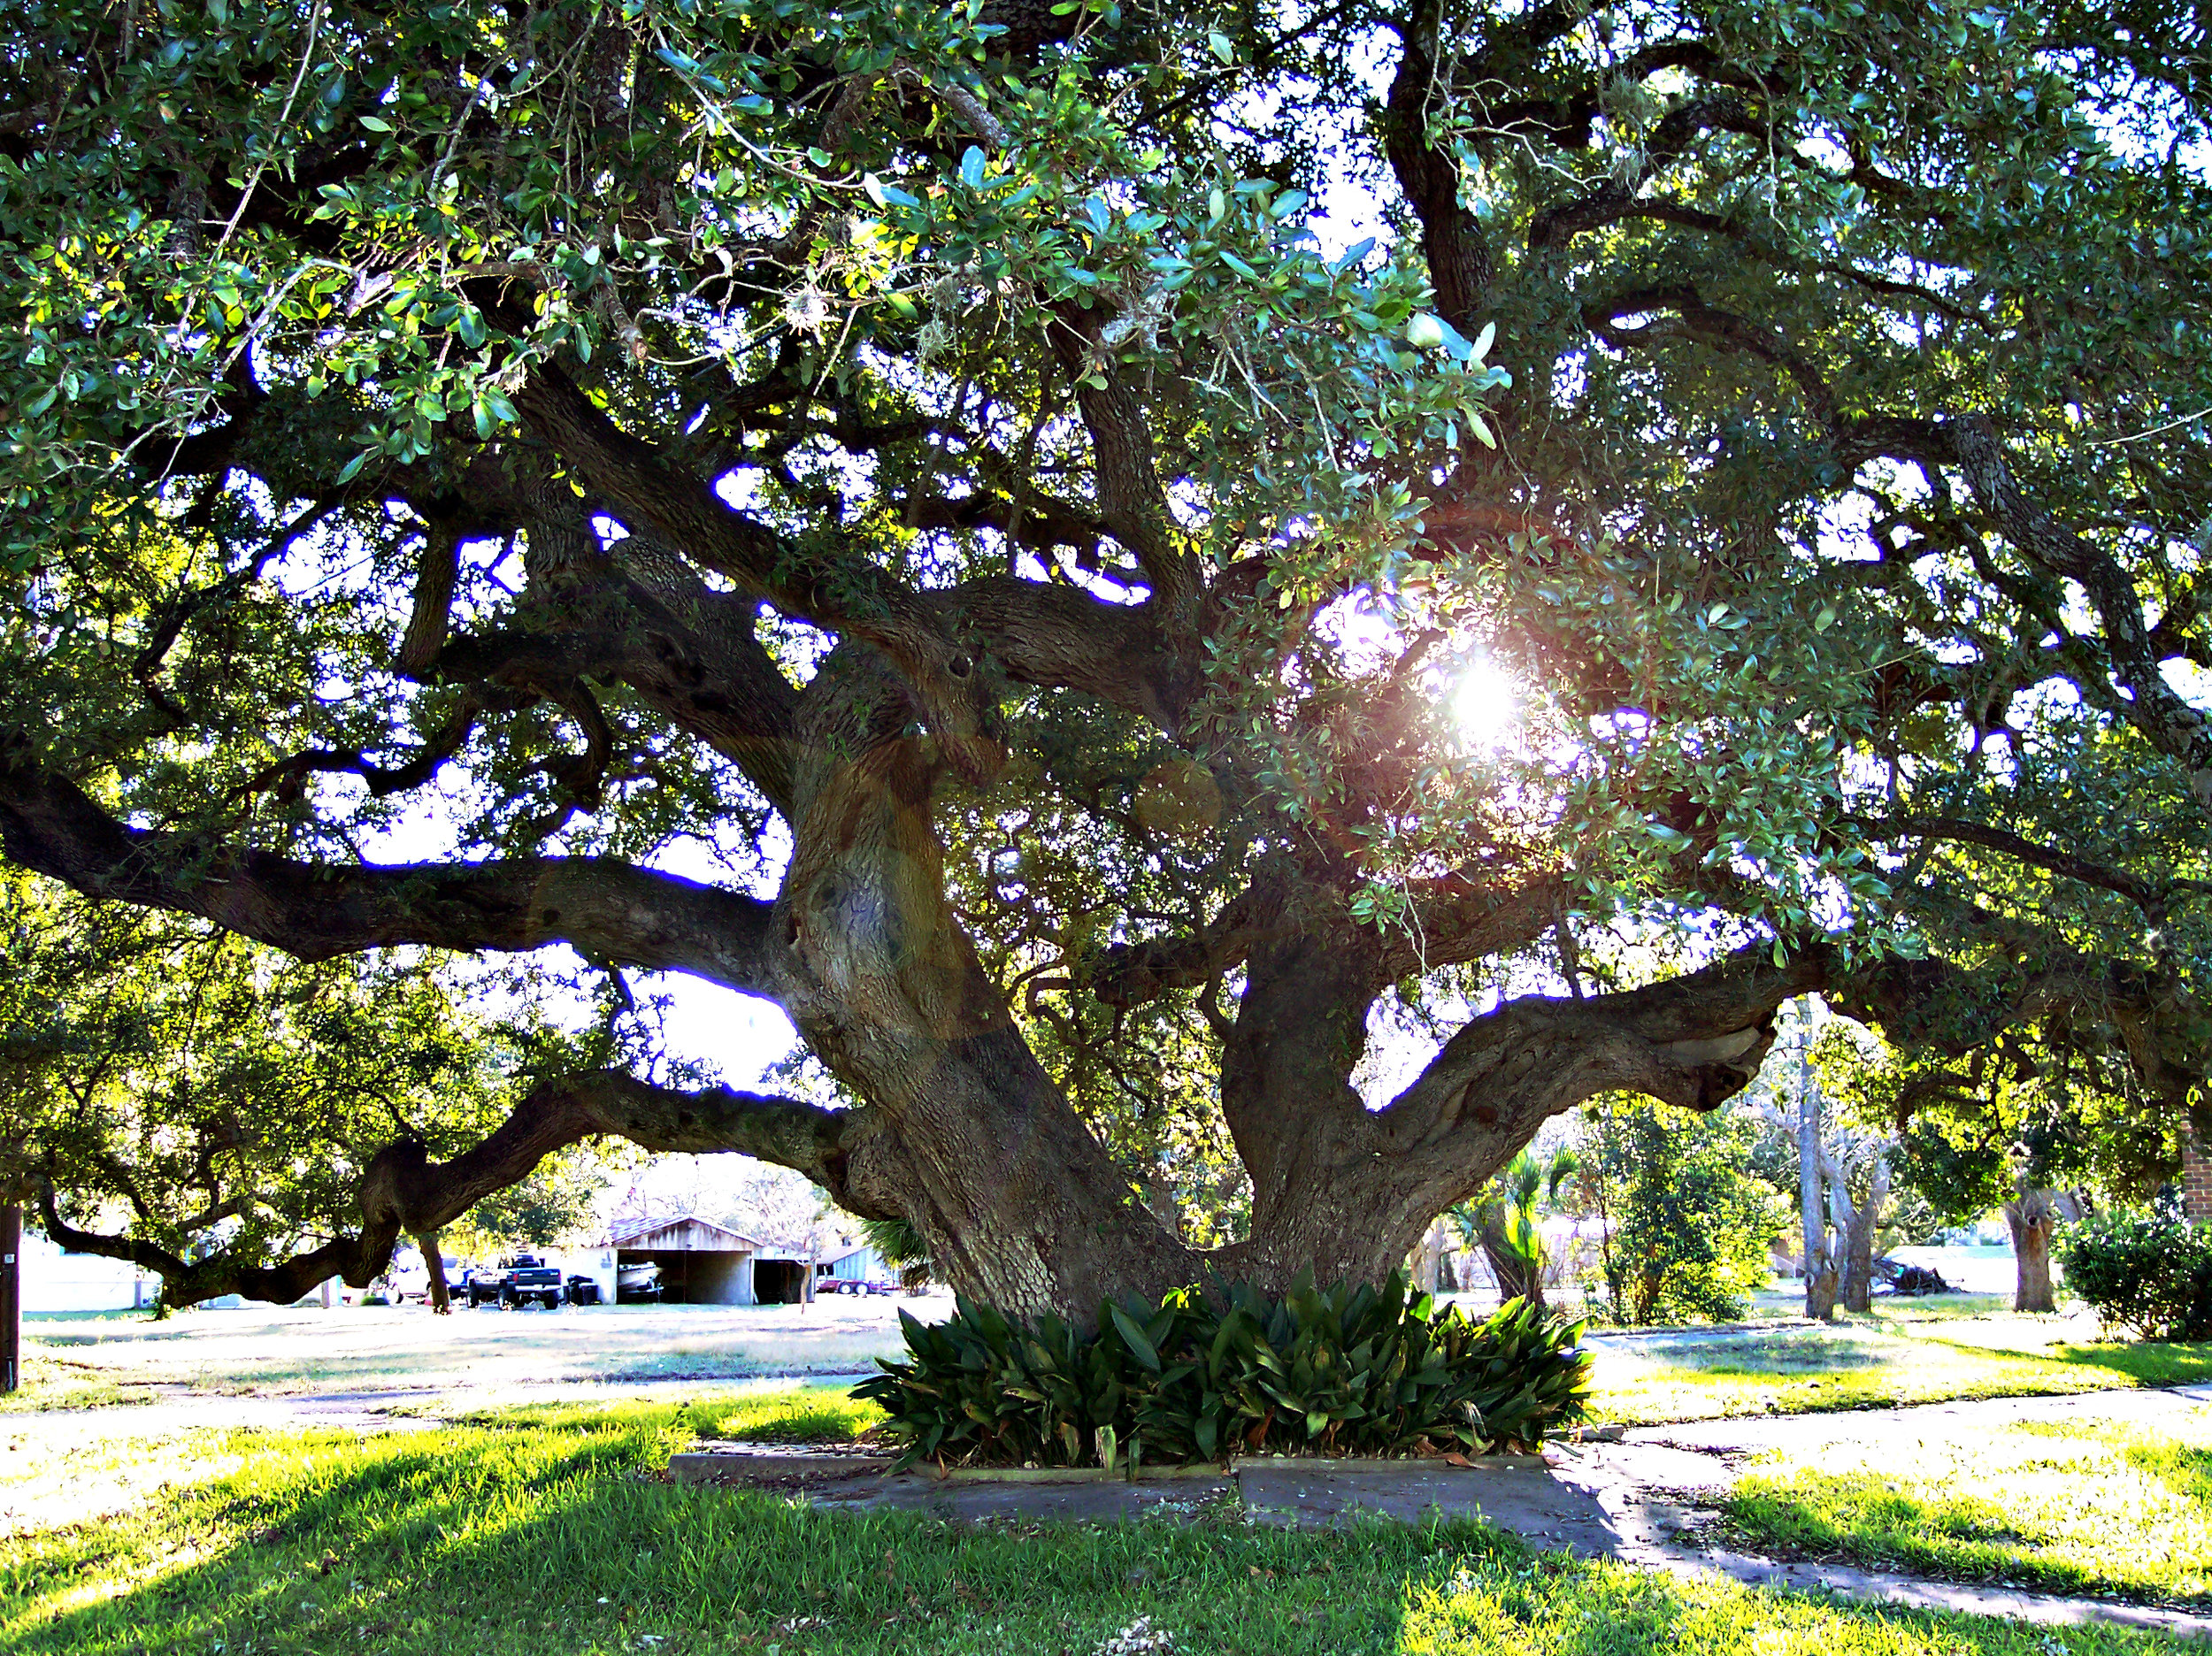 A large growing oak tree in the middle of a suburban neighborhood.